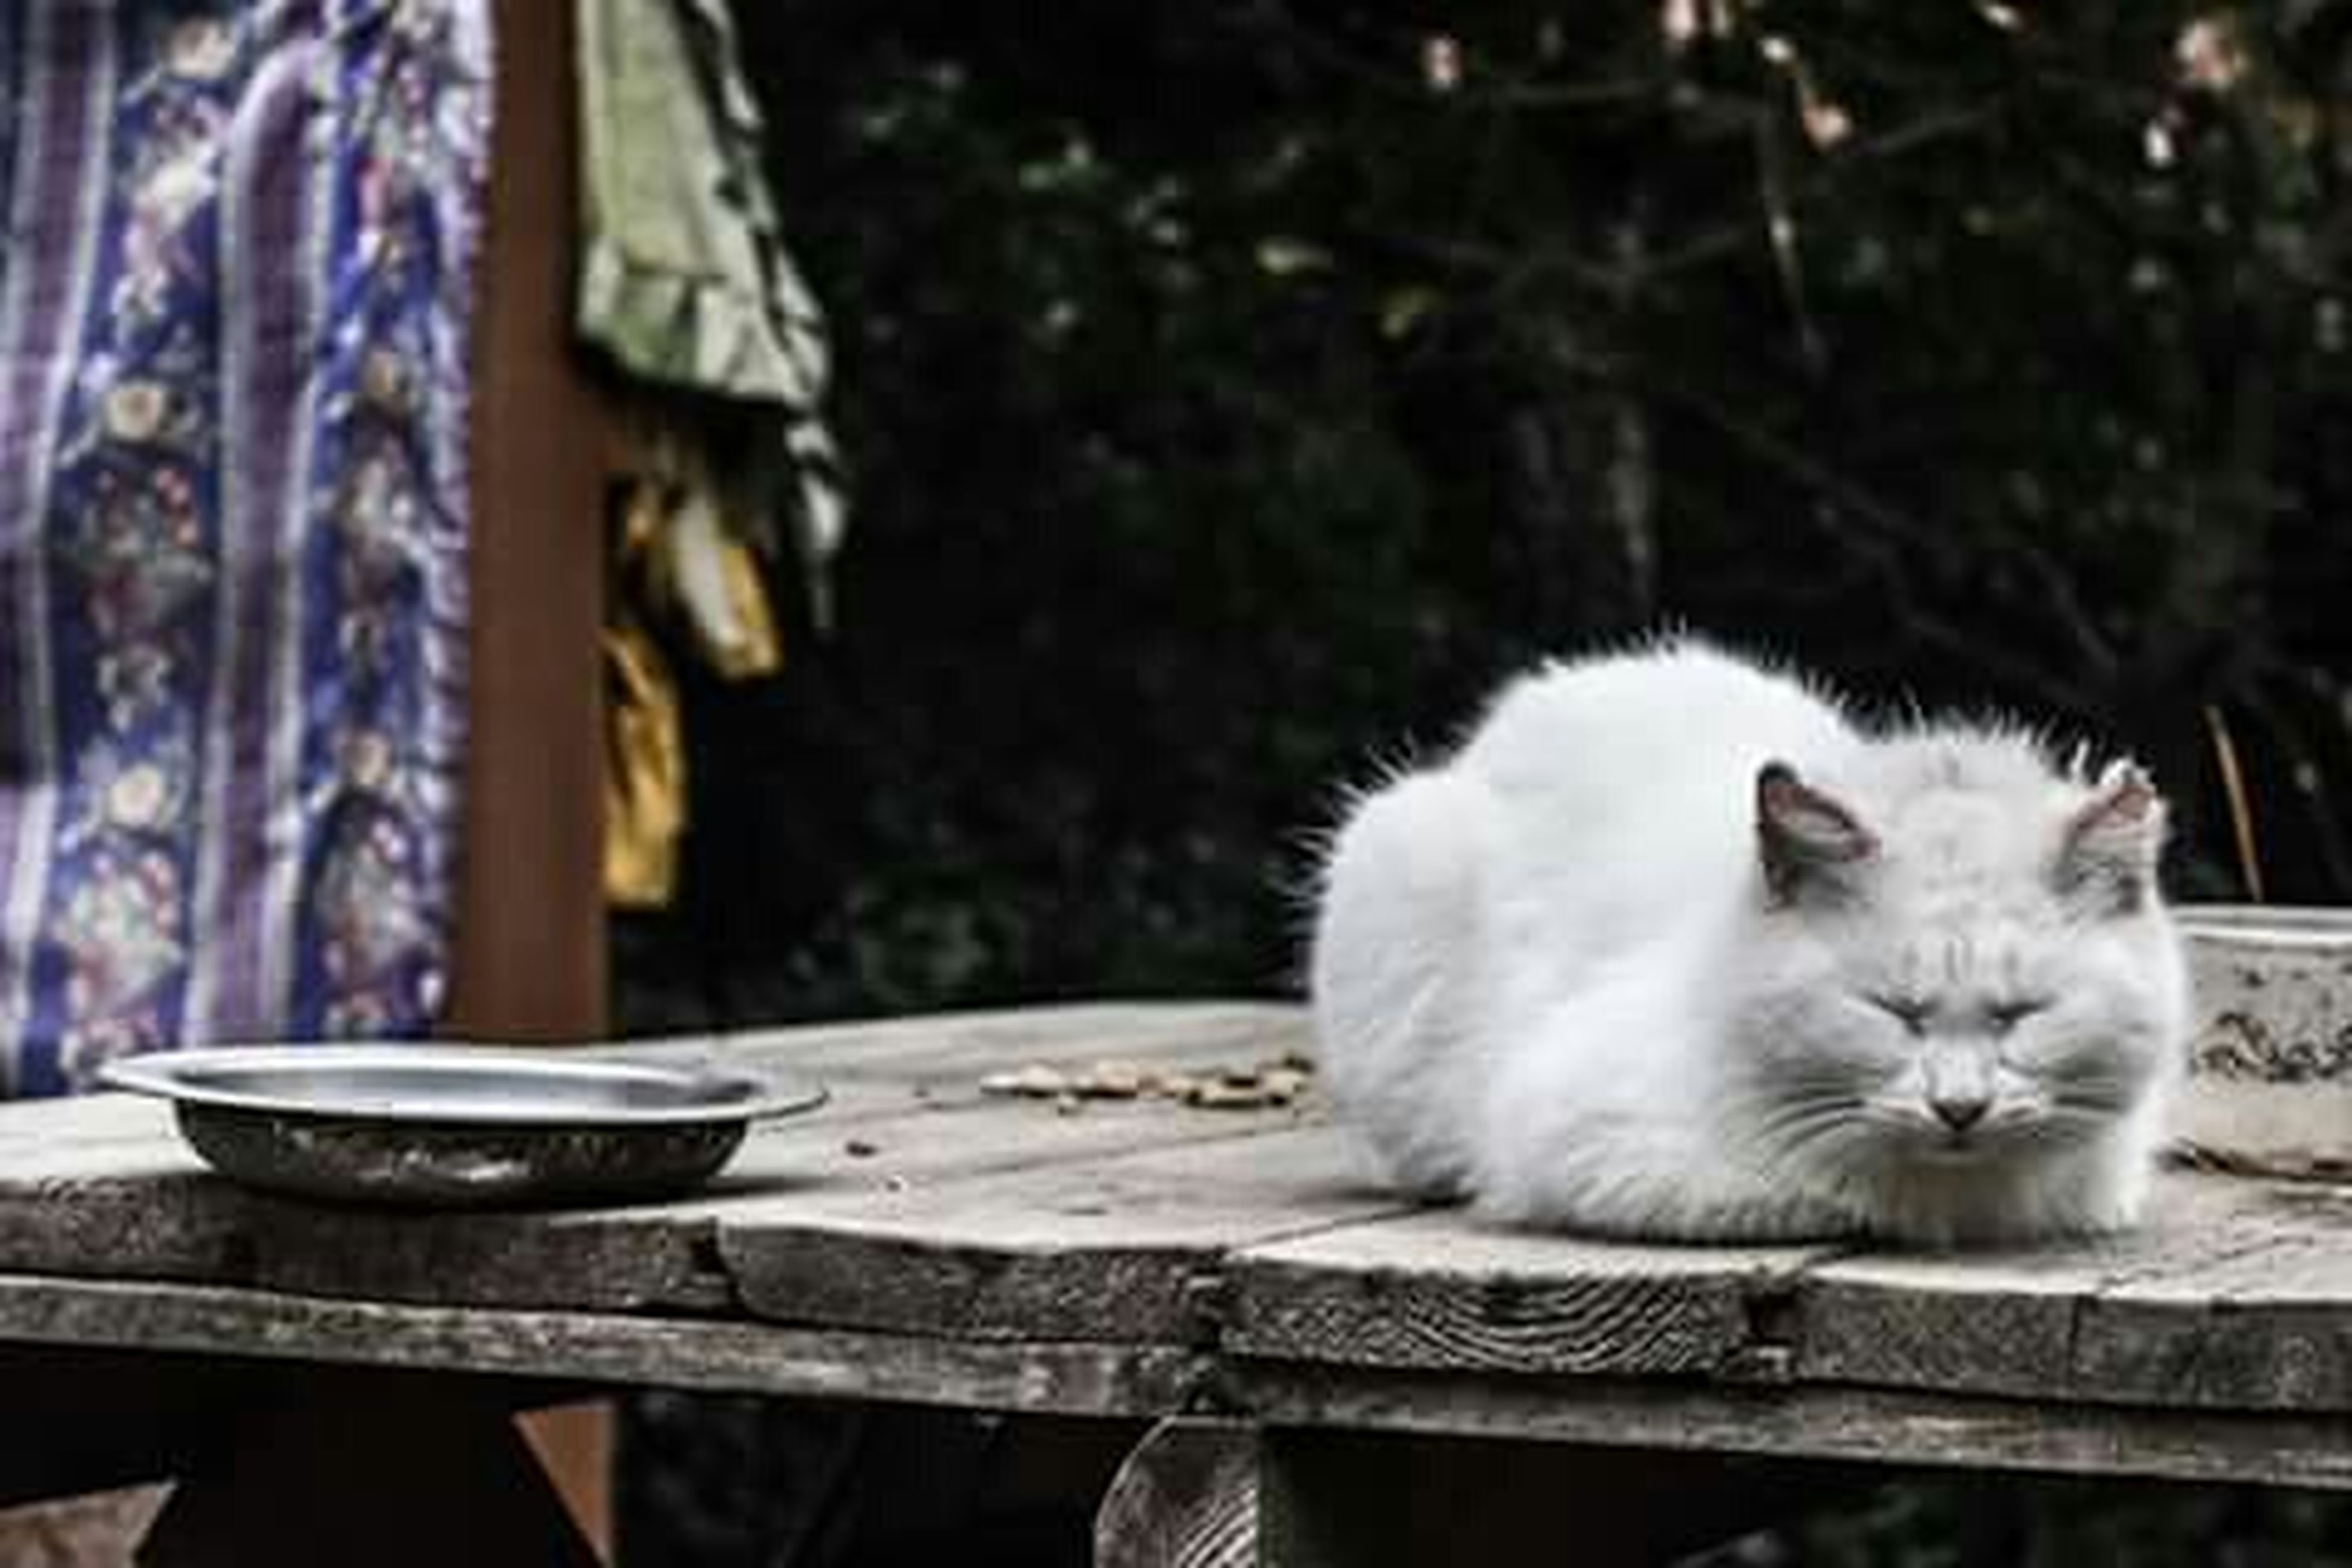 animal themes, one animal, domestic cat, cat, mammal, focus on foreground, feline, domestic animals, pets, white color, close-up, relaxation, sitting, whisker, looking at camera, portrait, outdoors, nature, day, wildlife